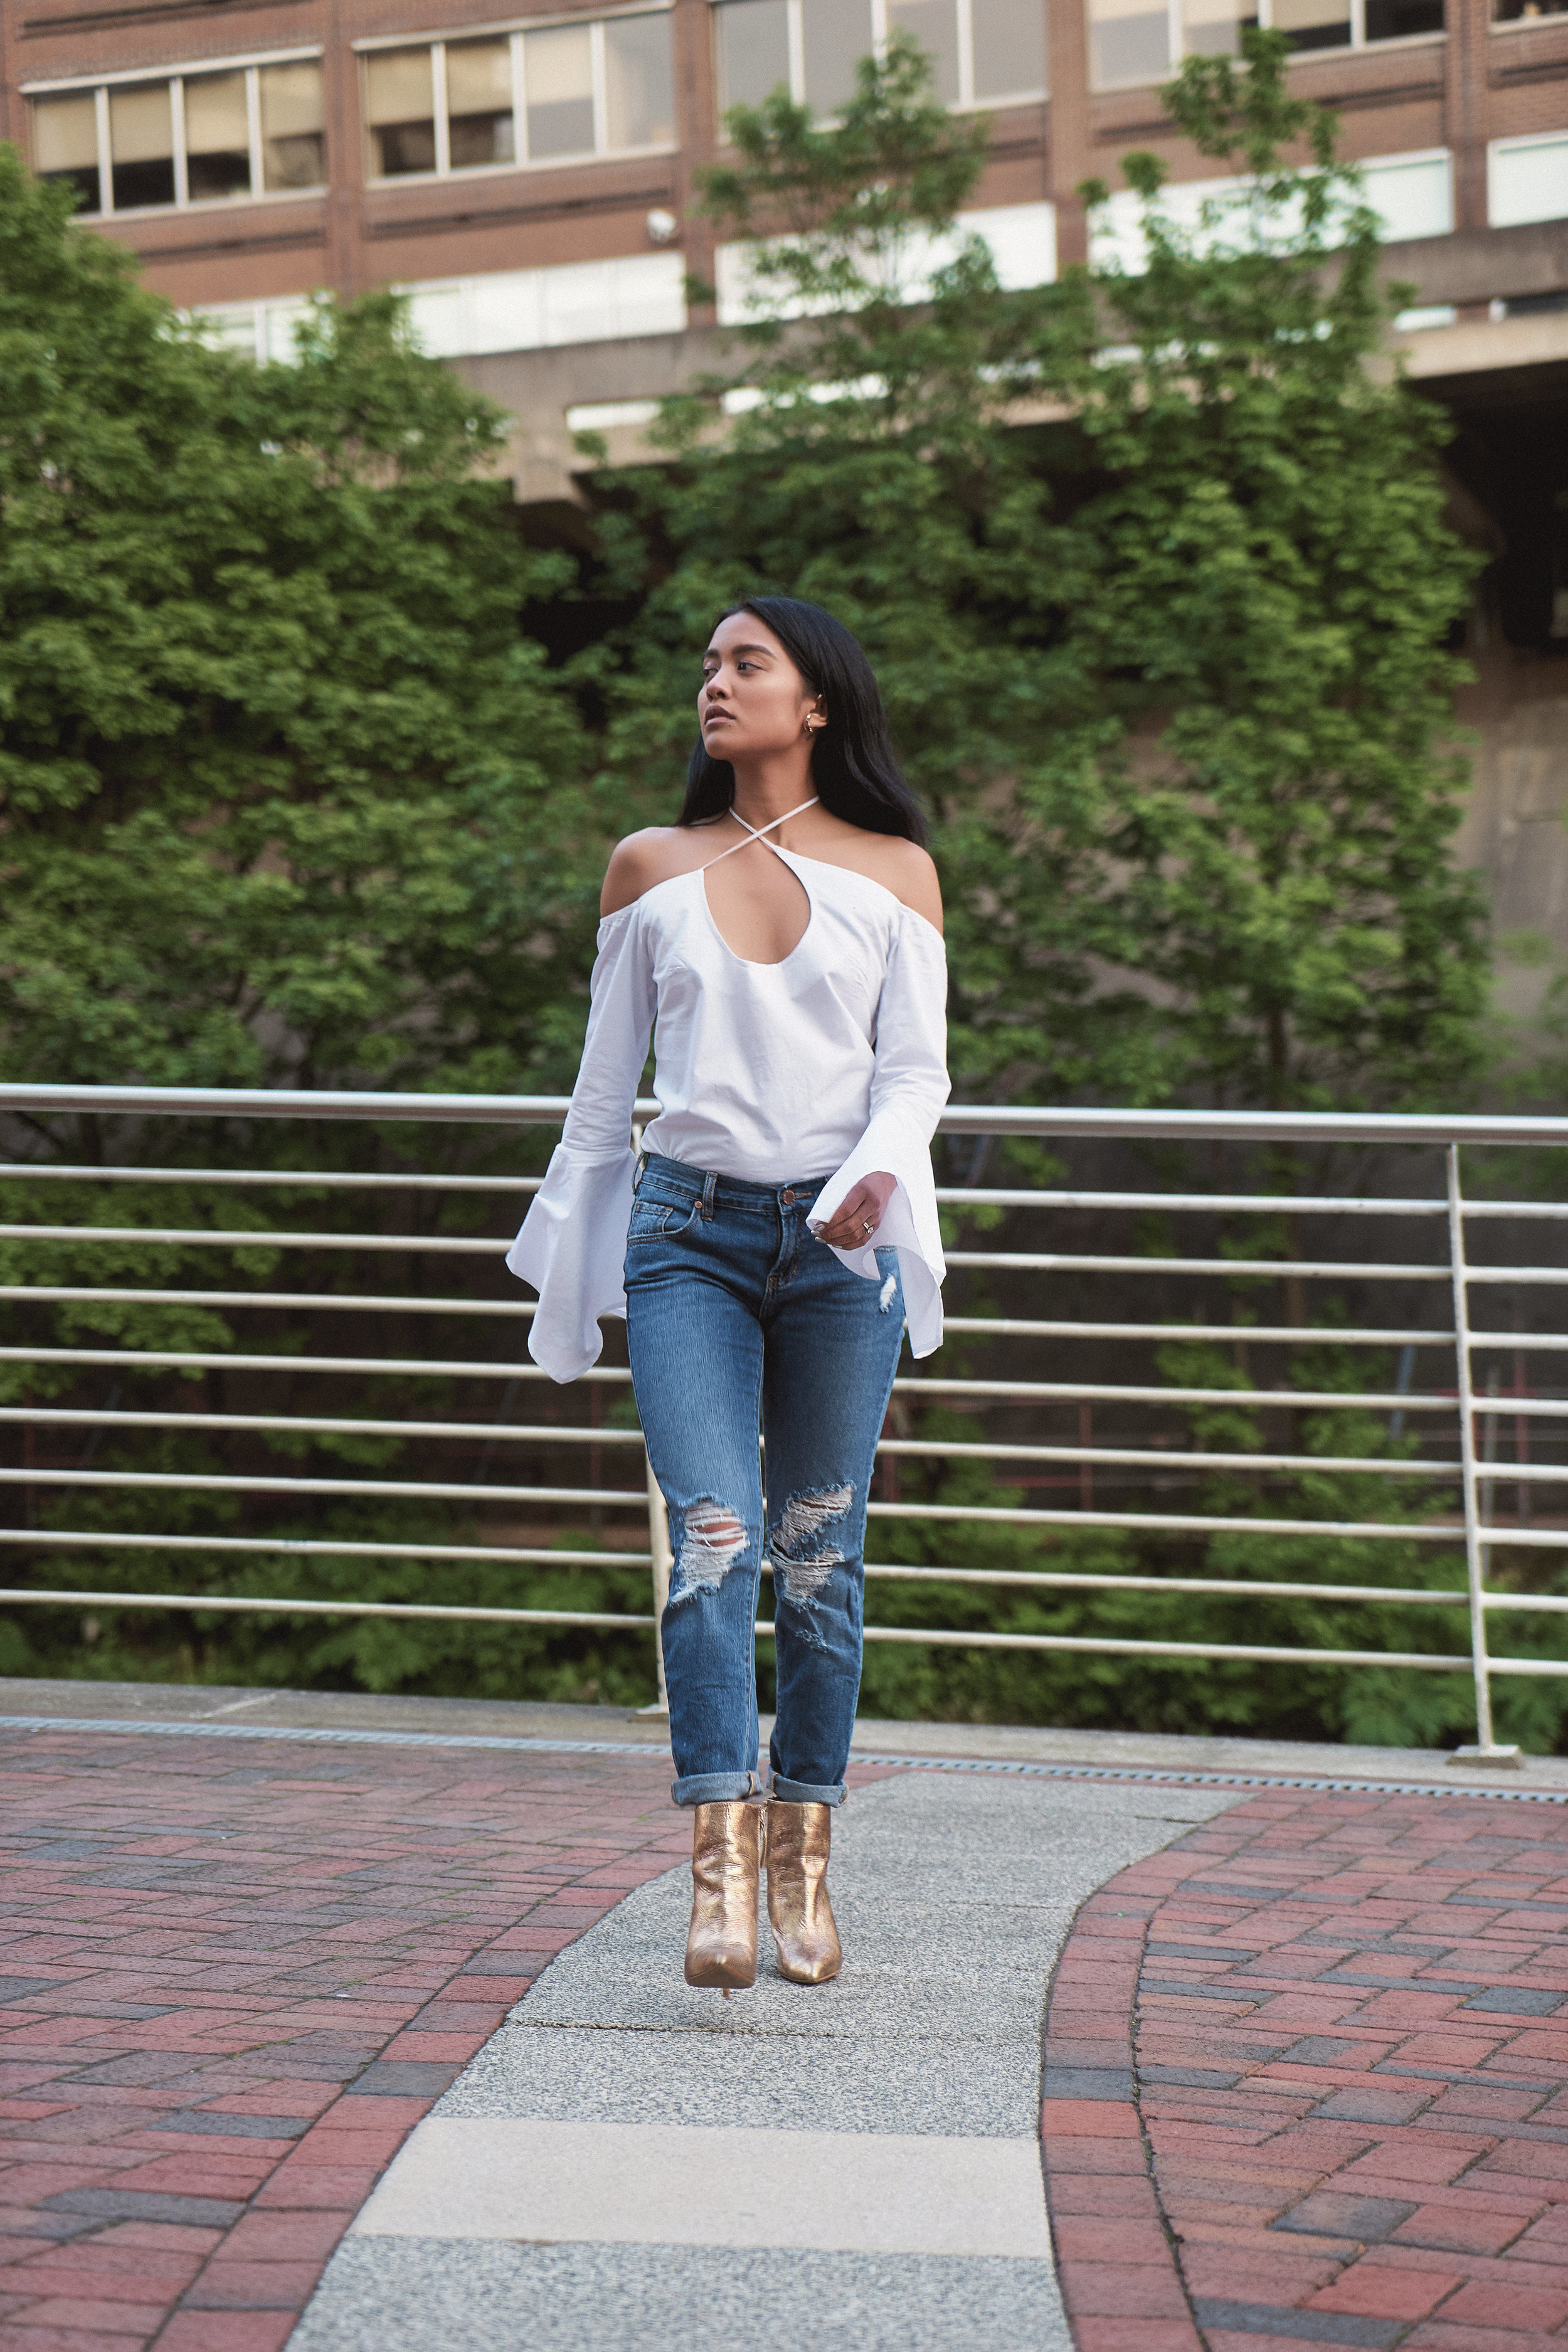 maurie & eve top  |  pacsun jeans  | zara booties |  love AJ earrings  |  TT ring  |   photos by sean martin